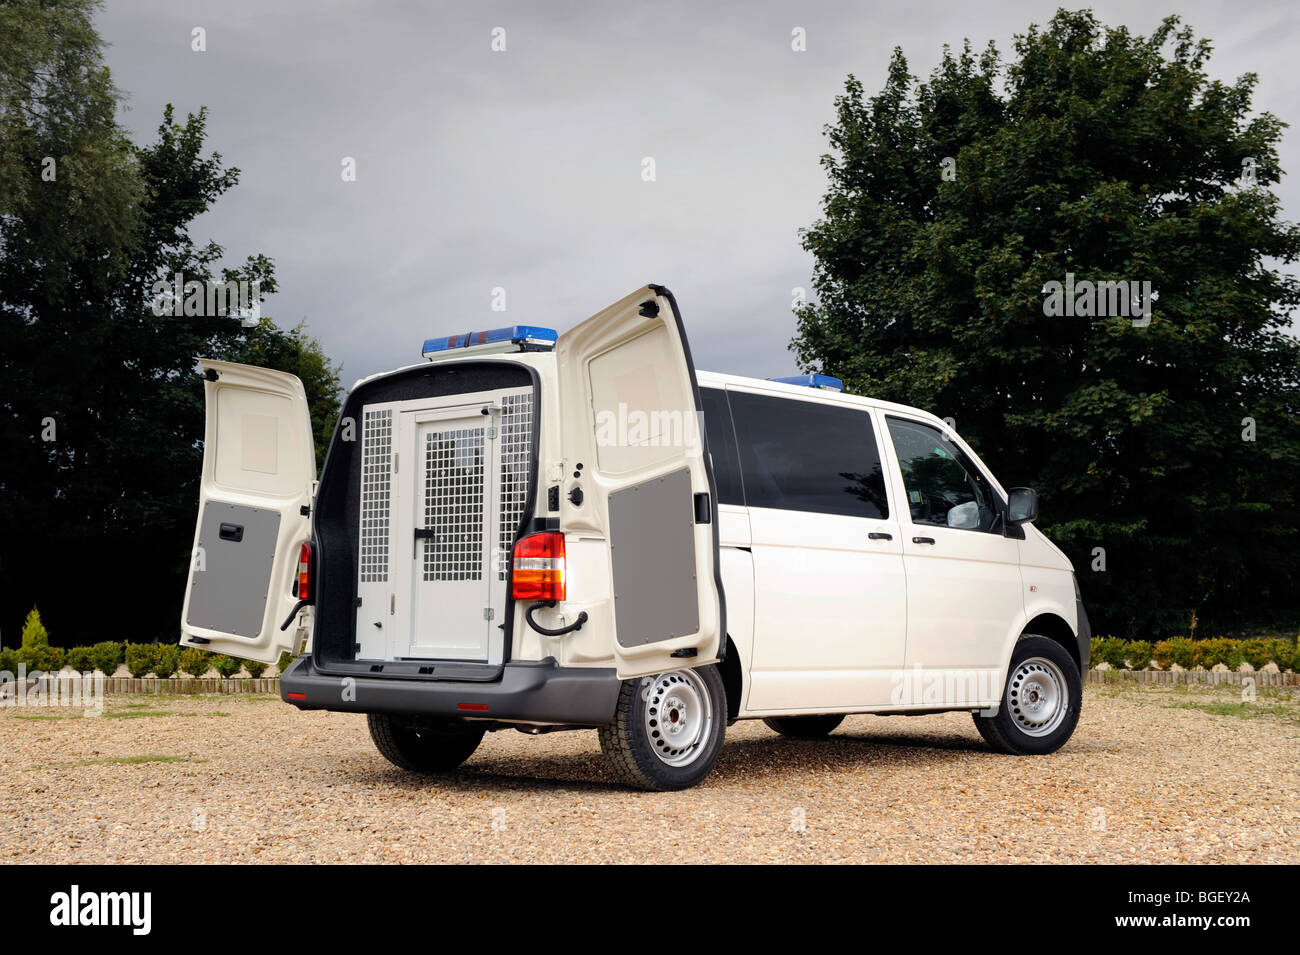 a rear view of a VW Volkswagen police van Vehicle showing the cell or cage - Stock Image